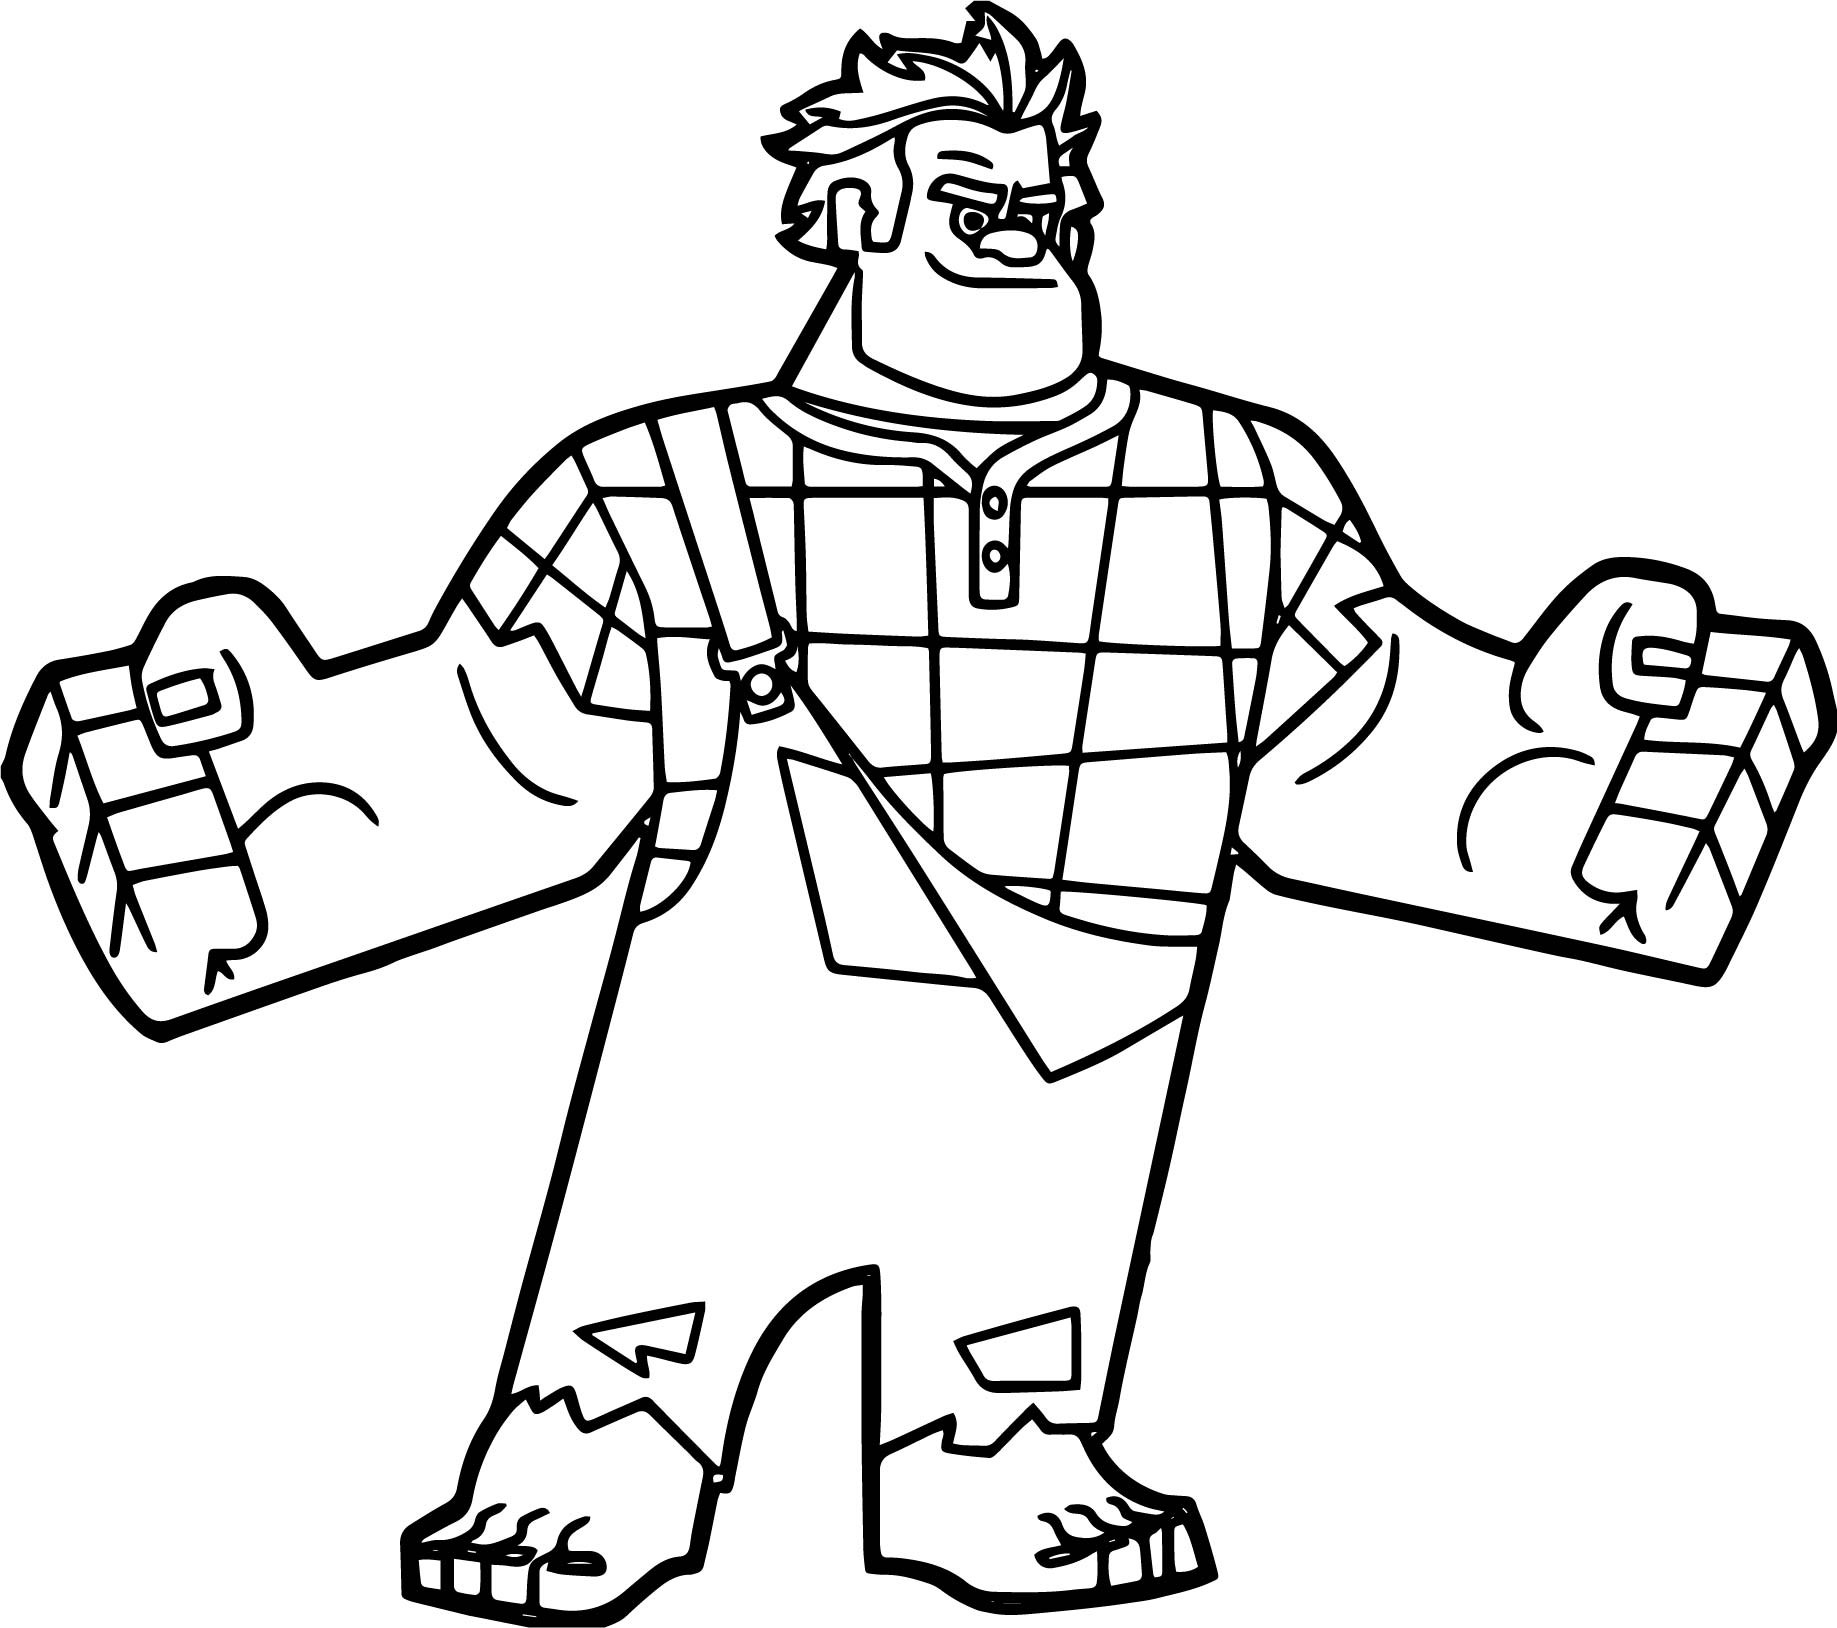 1837x1628 Ralph And Vanellope Coloring Pages For Kids Best Of Vanellope Is